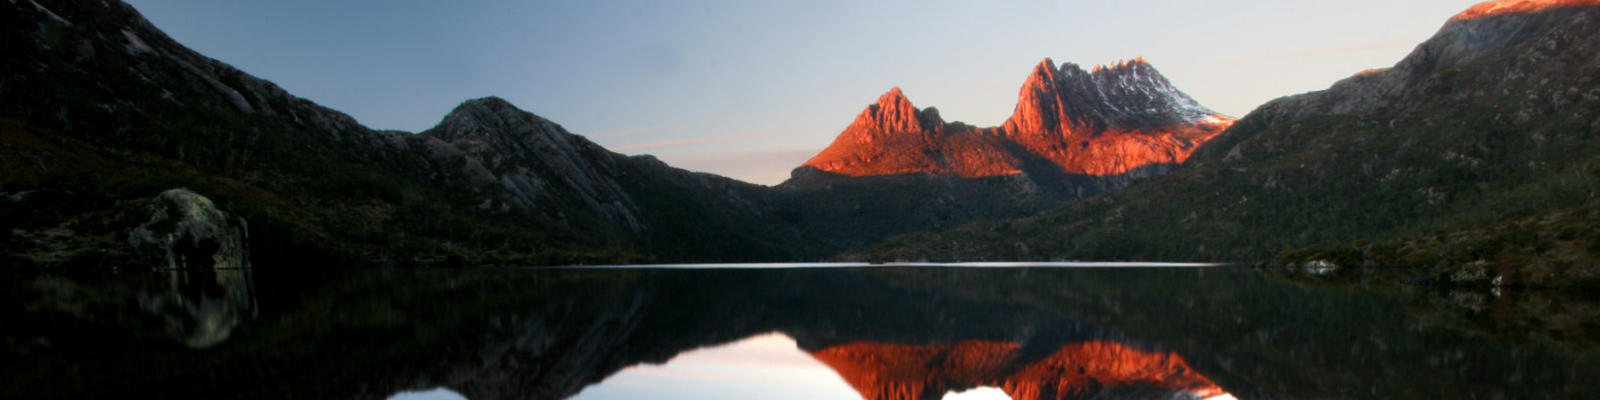 cradle mountain sunrise